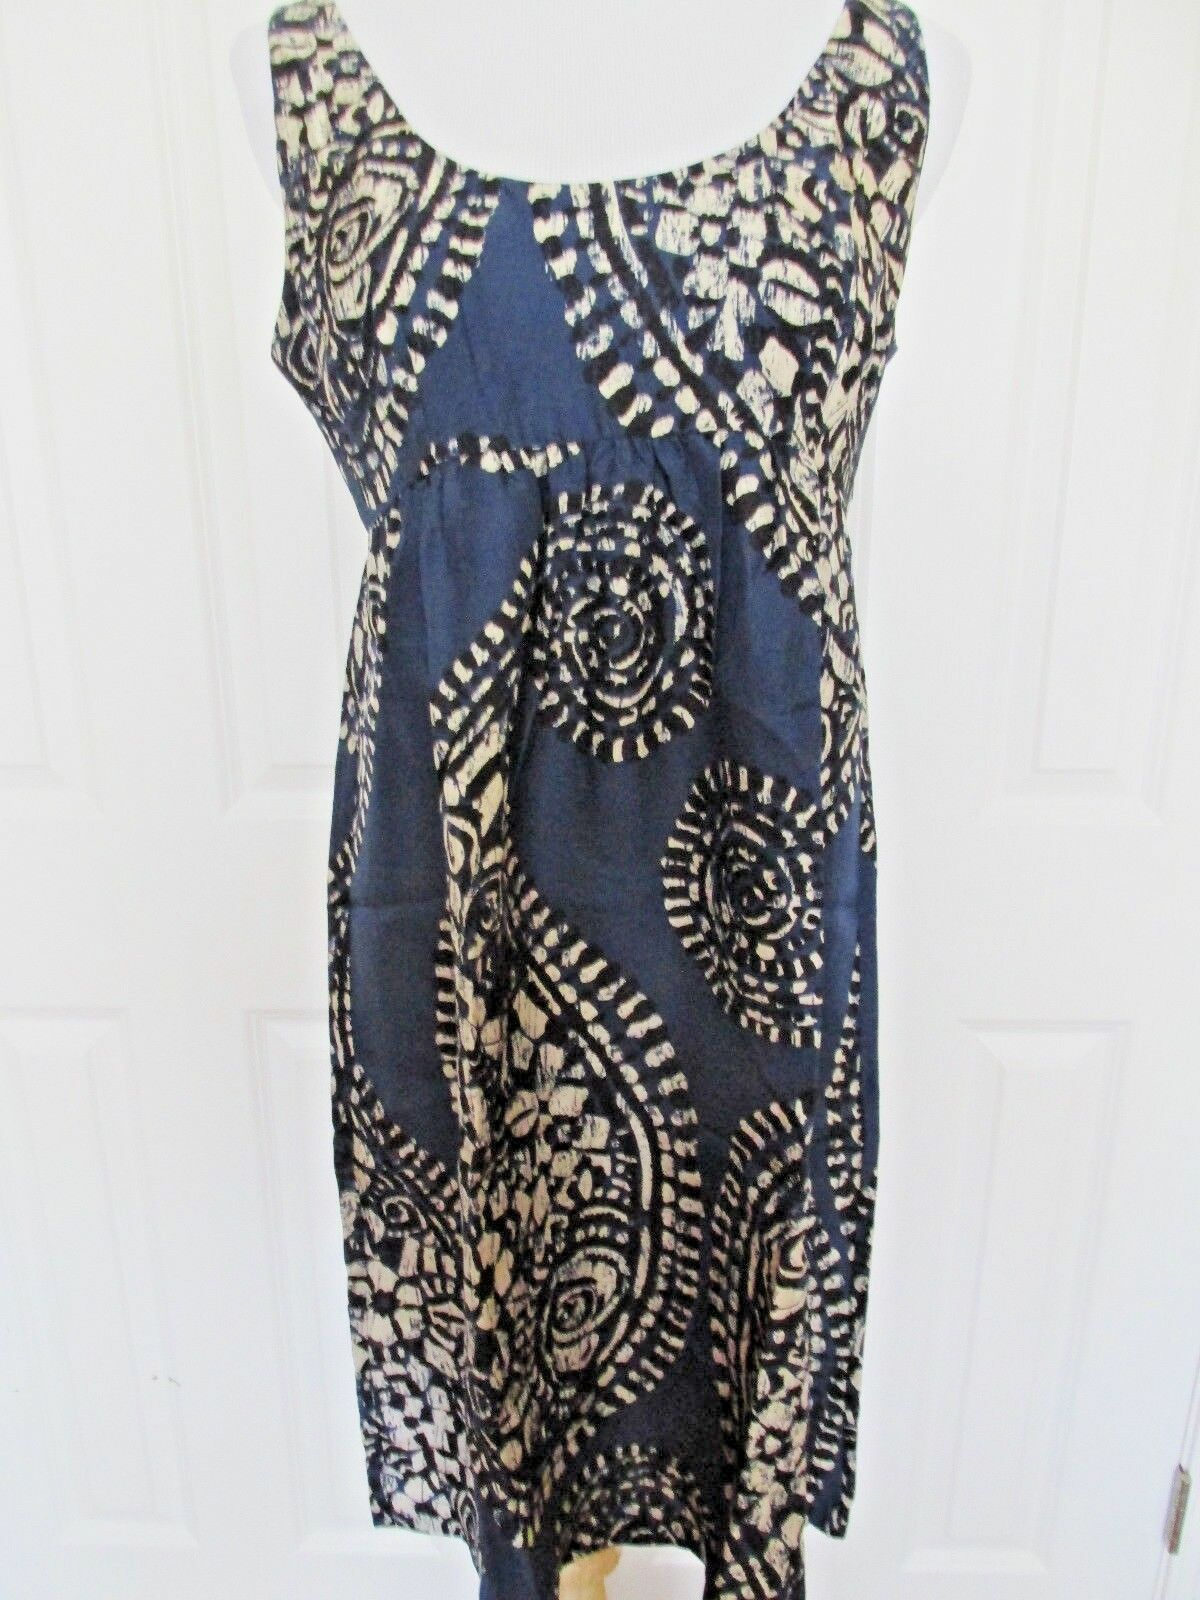 Primary image for Michael Kors Dress  Sz 10 Blue 100% Silk Batik Print